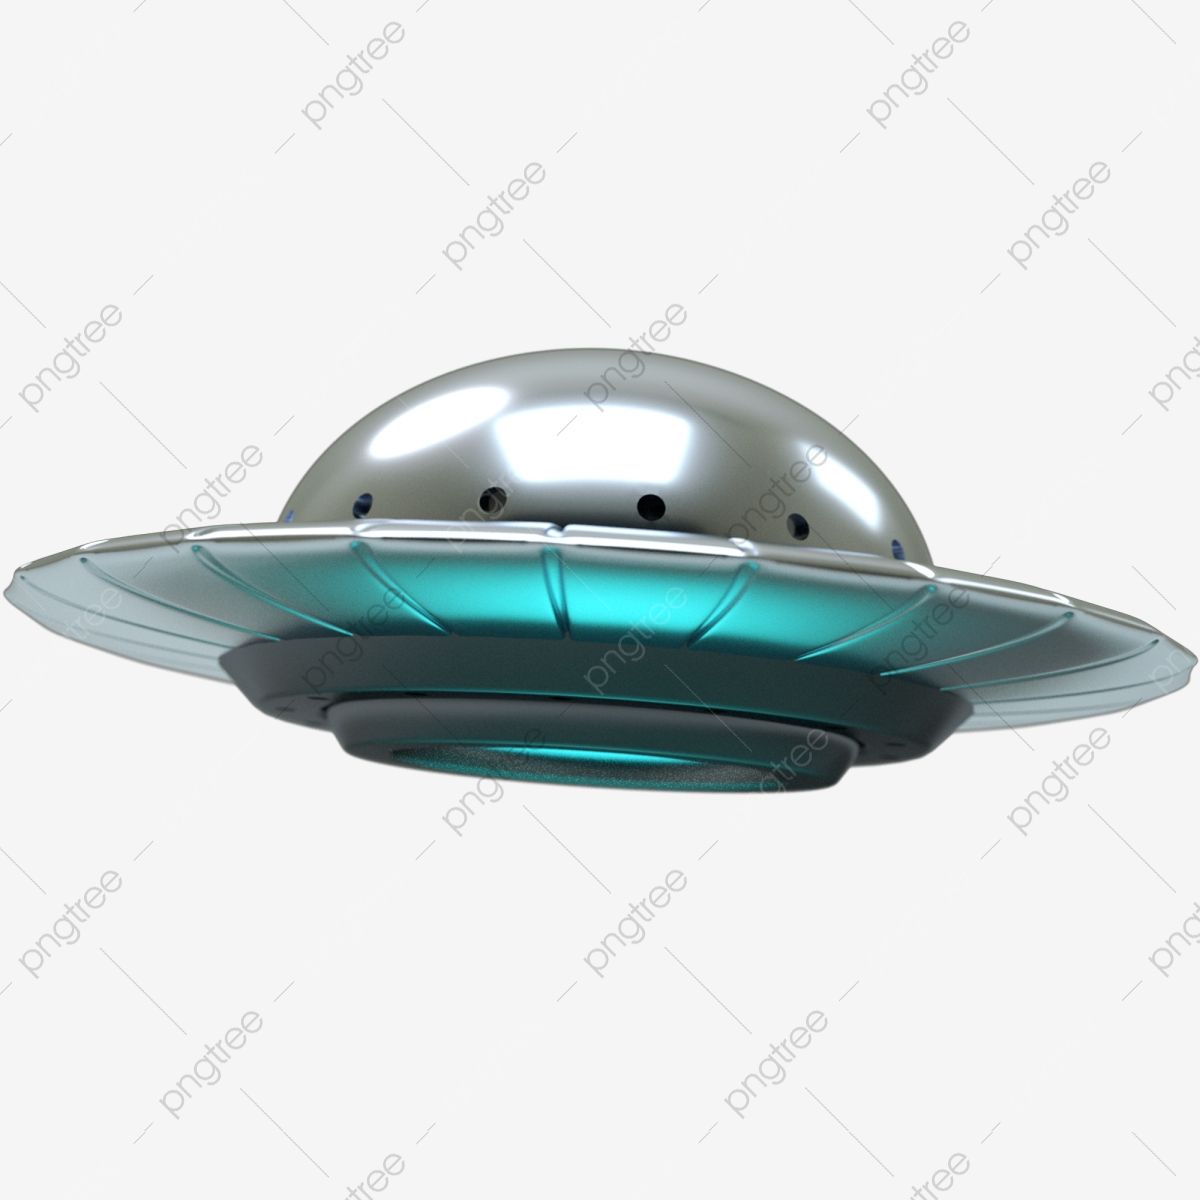 Ufo Png Images Vector And Psd Files Free Download On Pngtree ✓ free for commercial use ✓ high quality images. https pngtree com freepng ufo 1631772 html